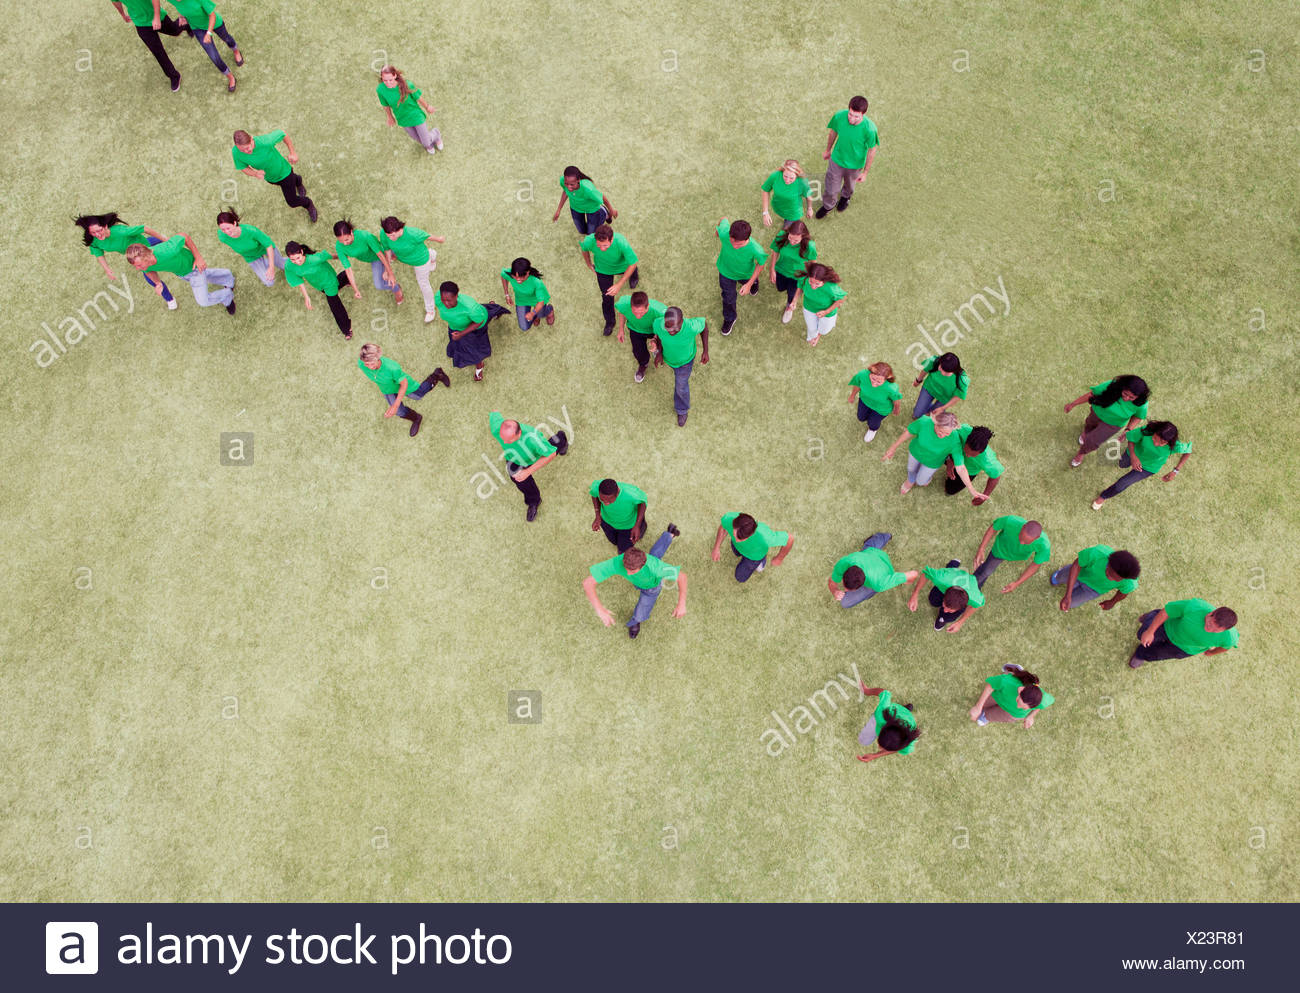 People in green t-shirts walking in field - Stock Image